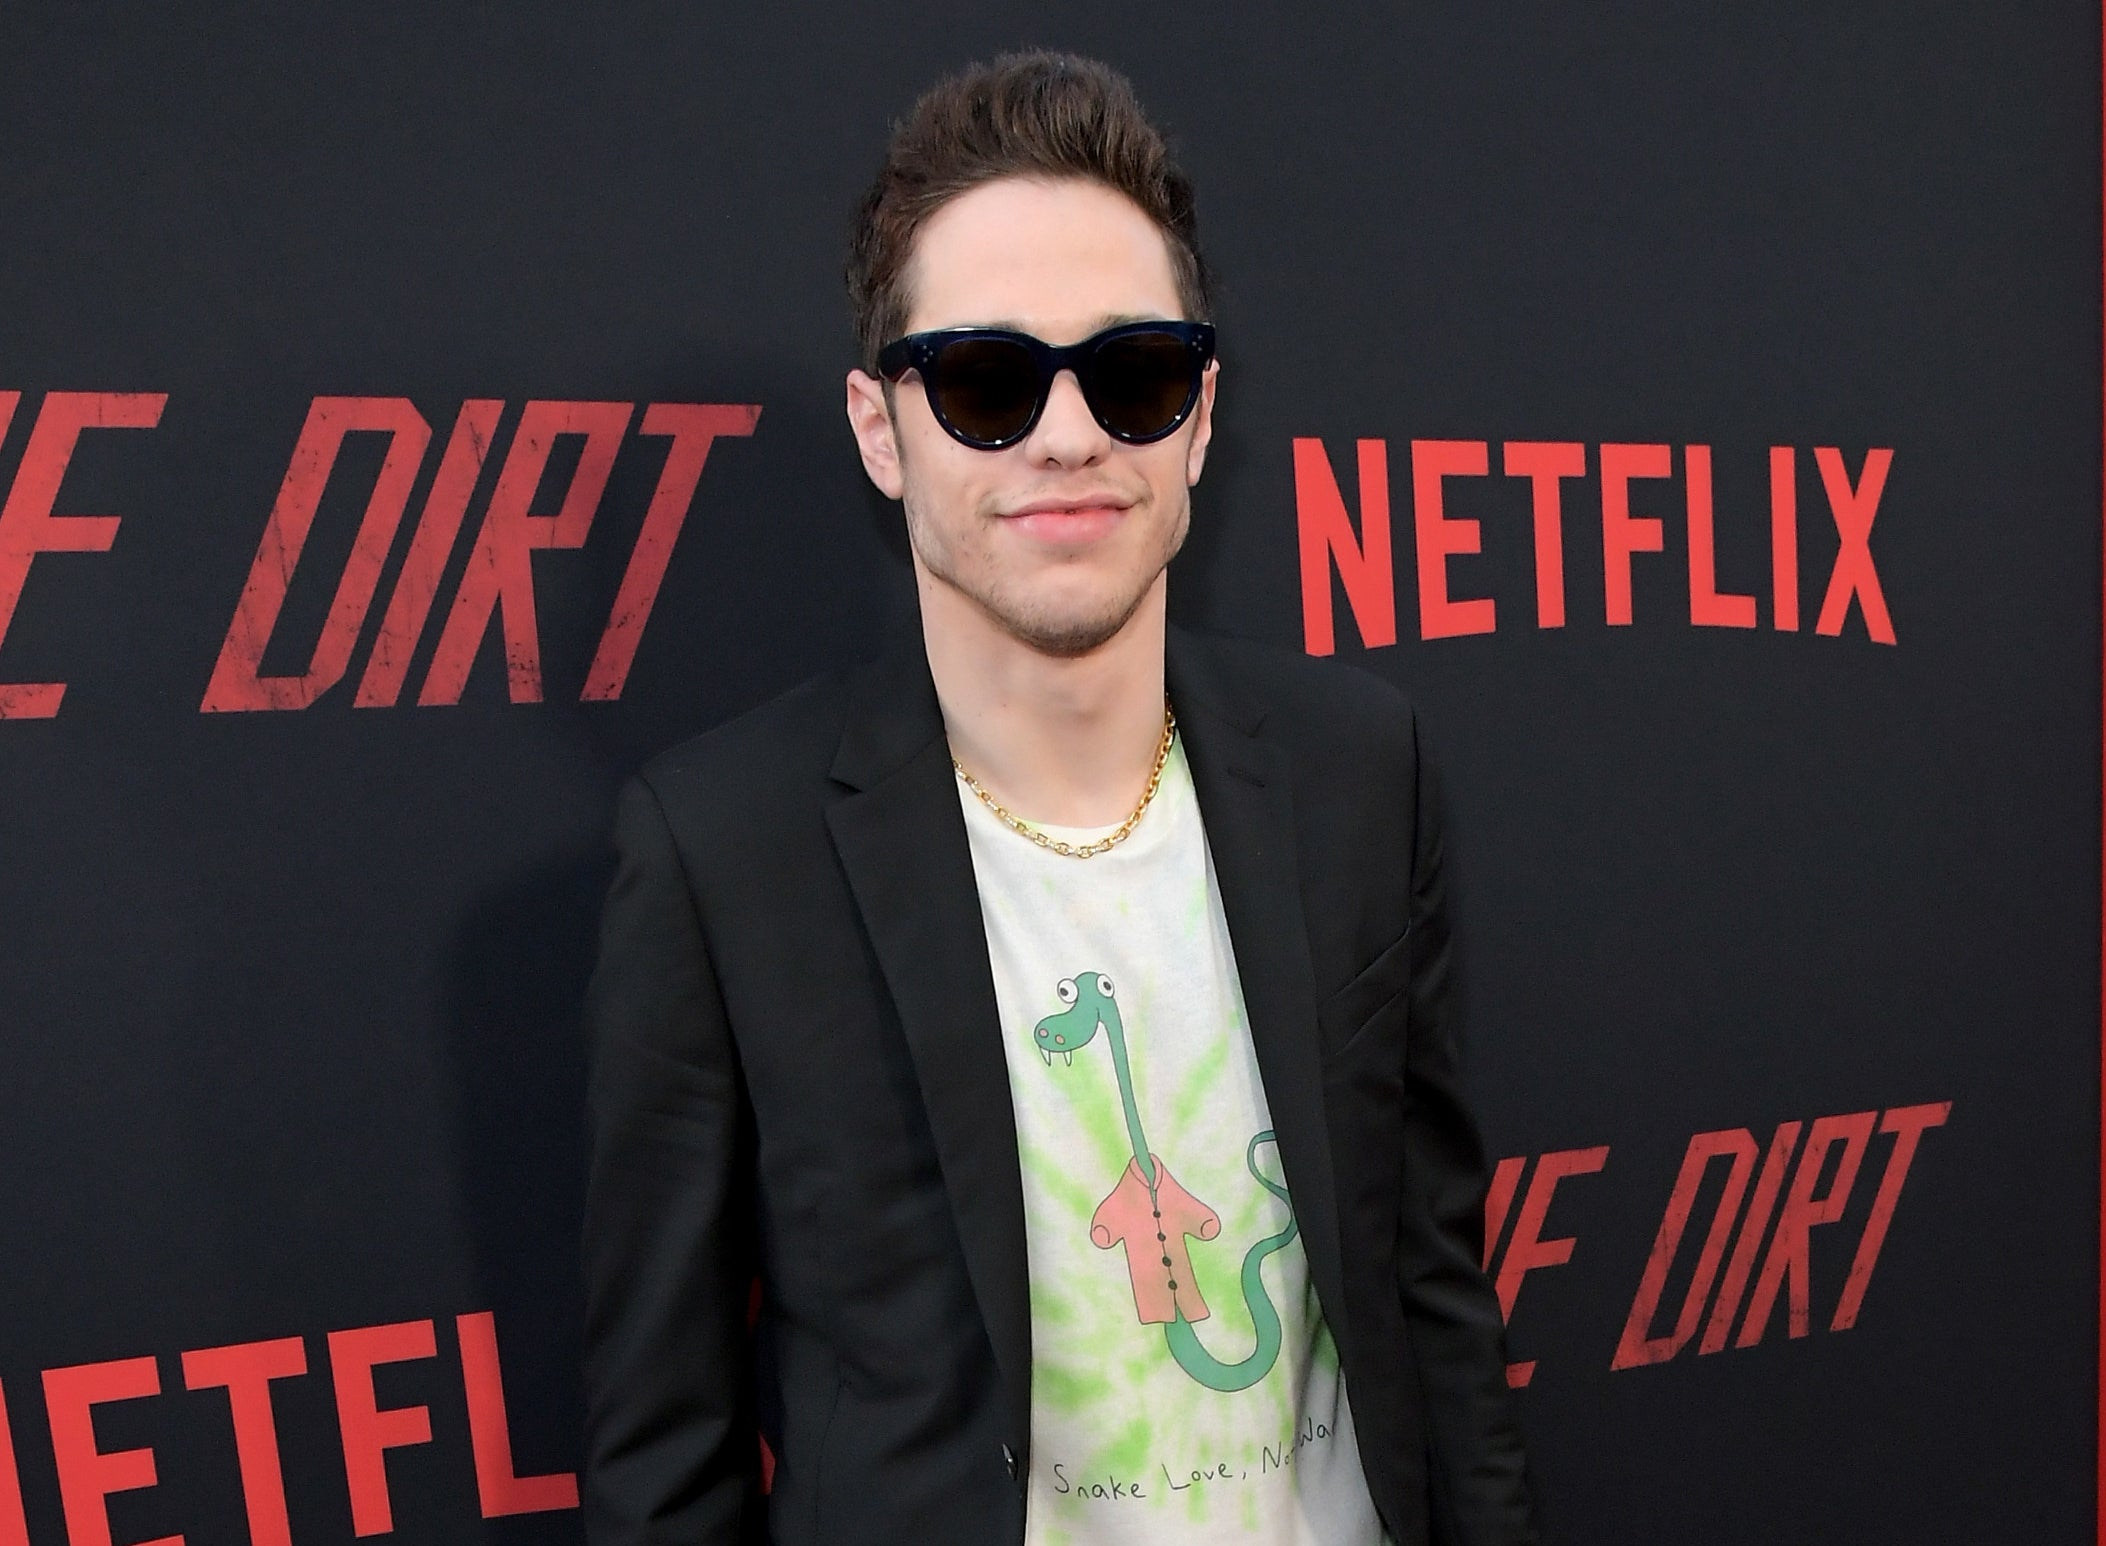 Pete wears sunglasses and a graphic tee with a suit jacket